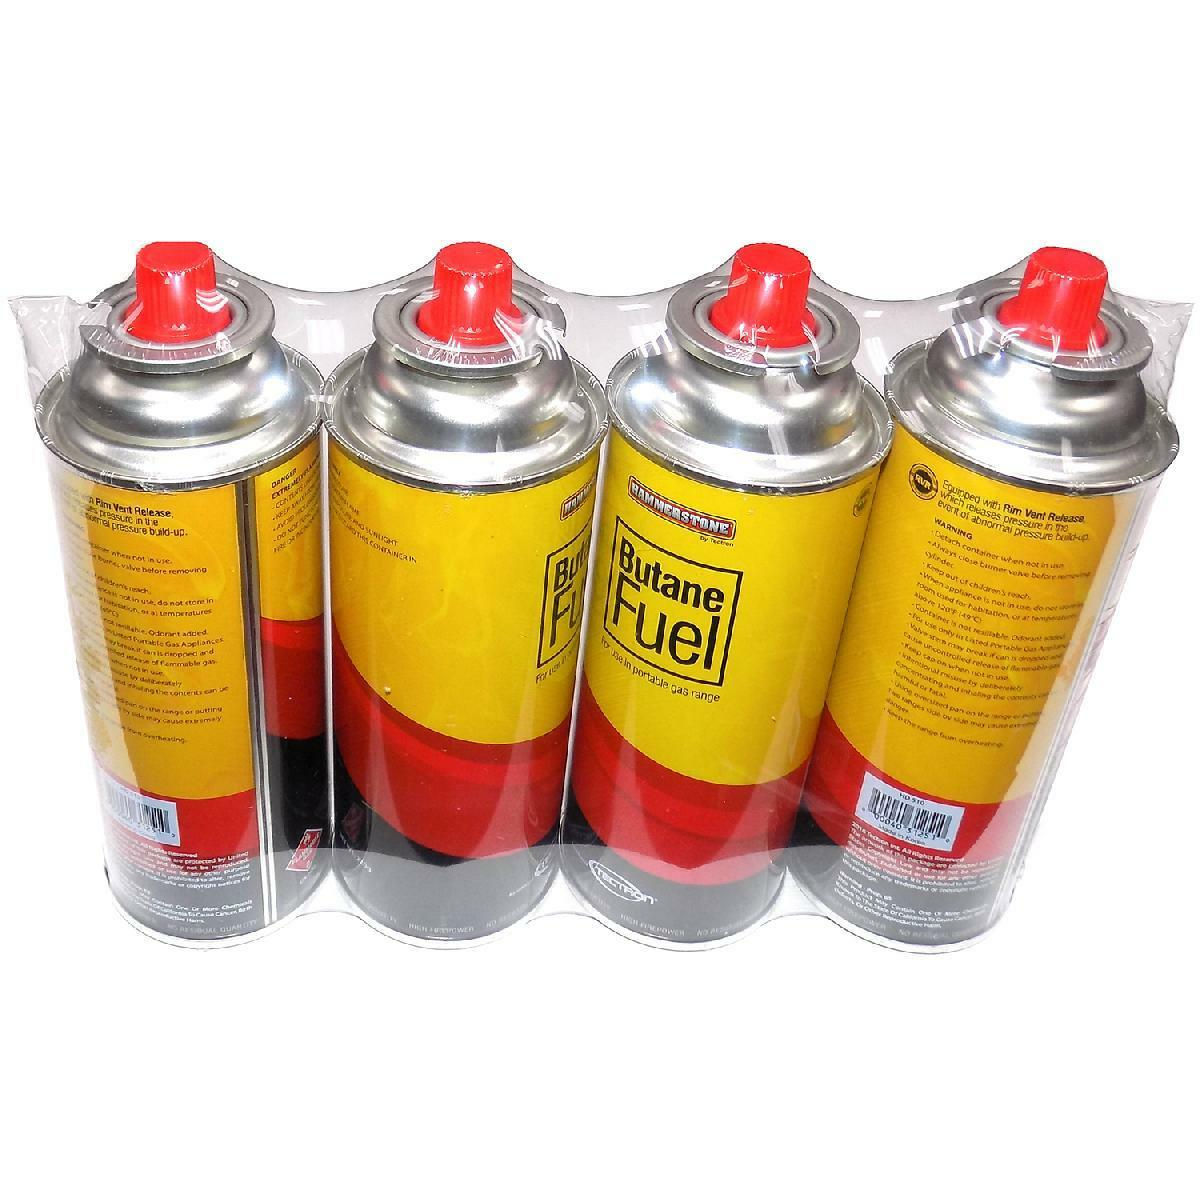 4-28Pk Portable Butane Fuel Gas Range Canister Can Cartridges  Stove Burners  order now